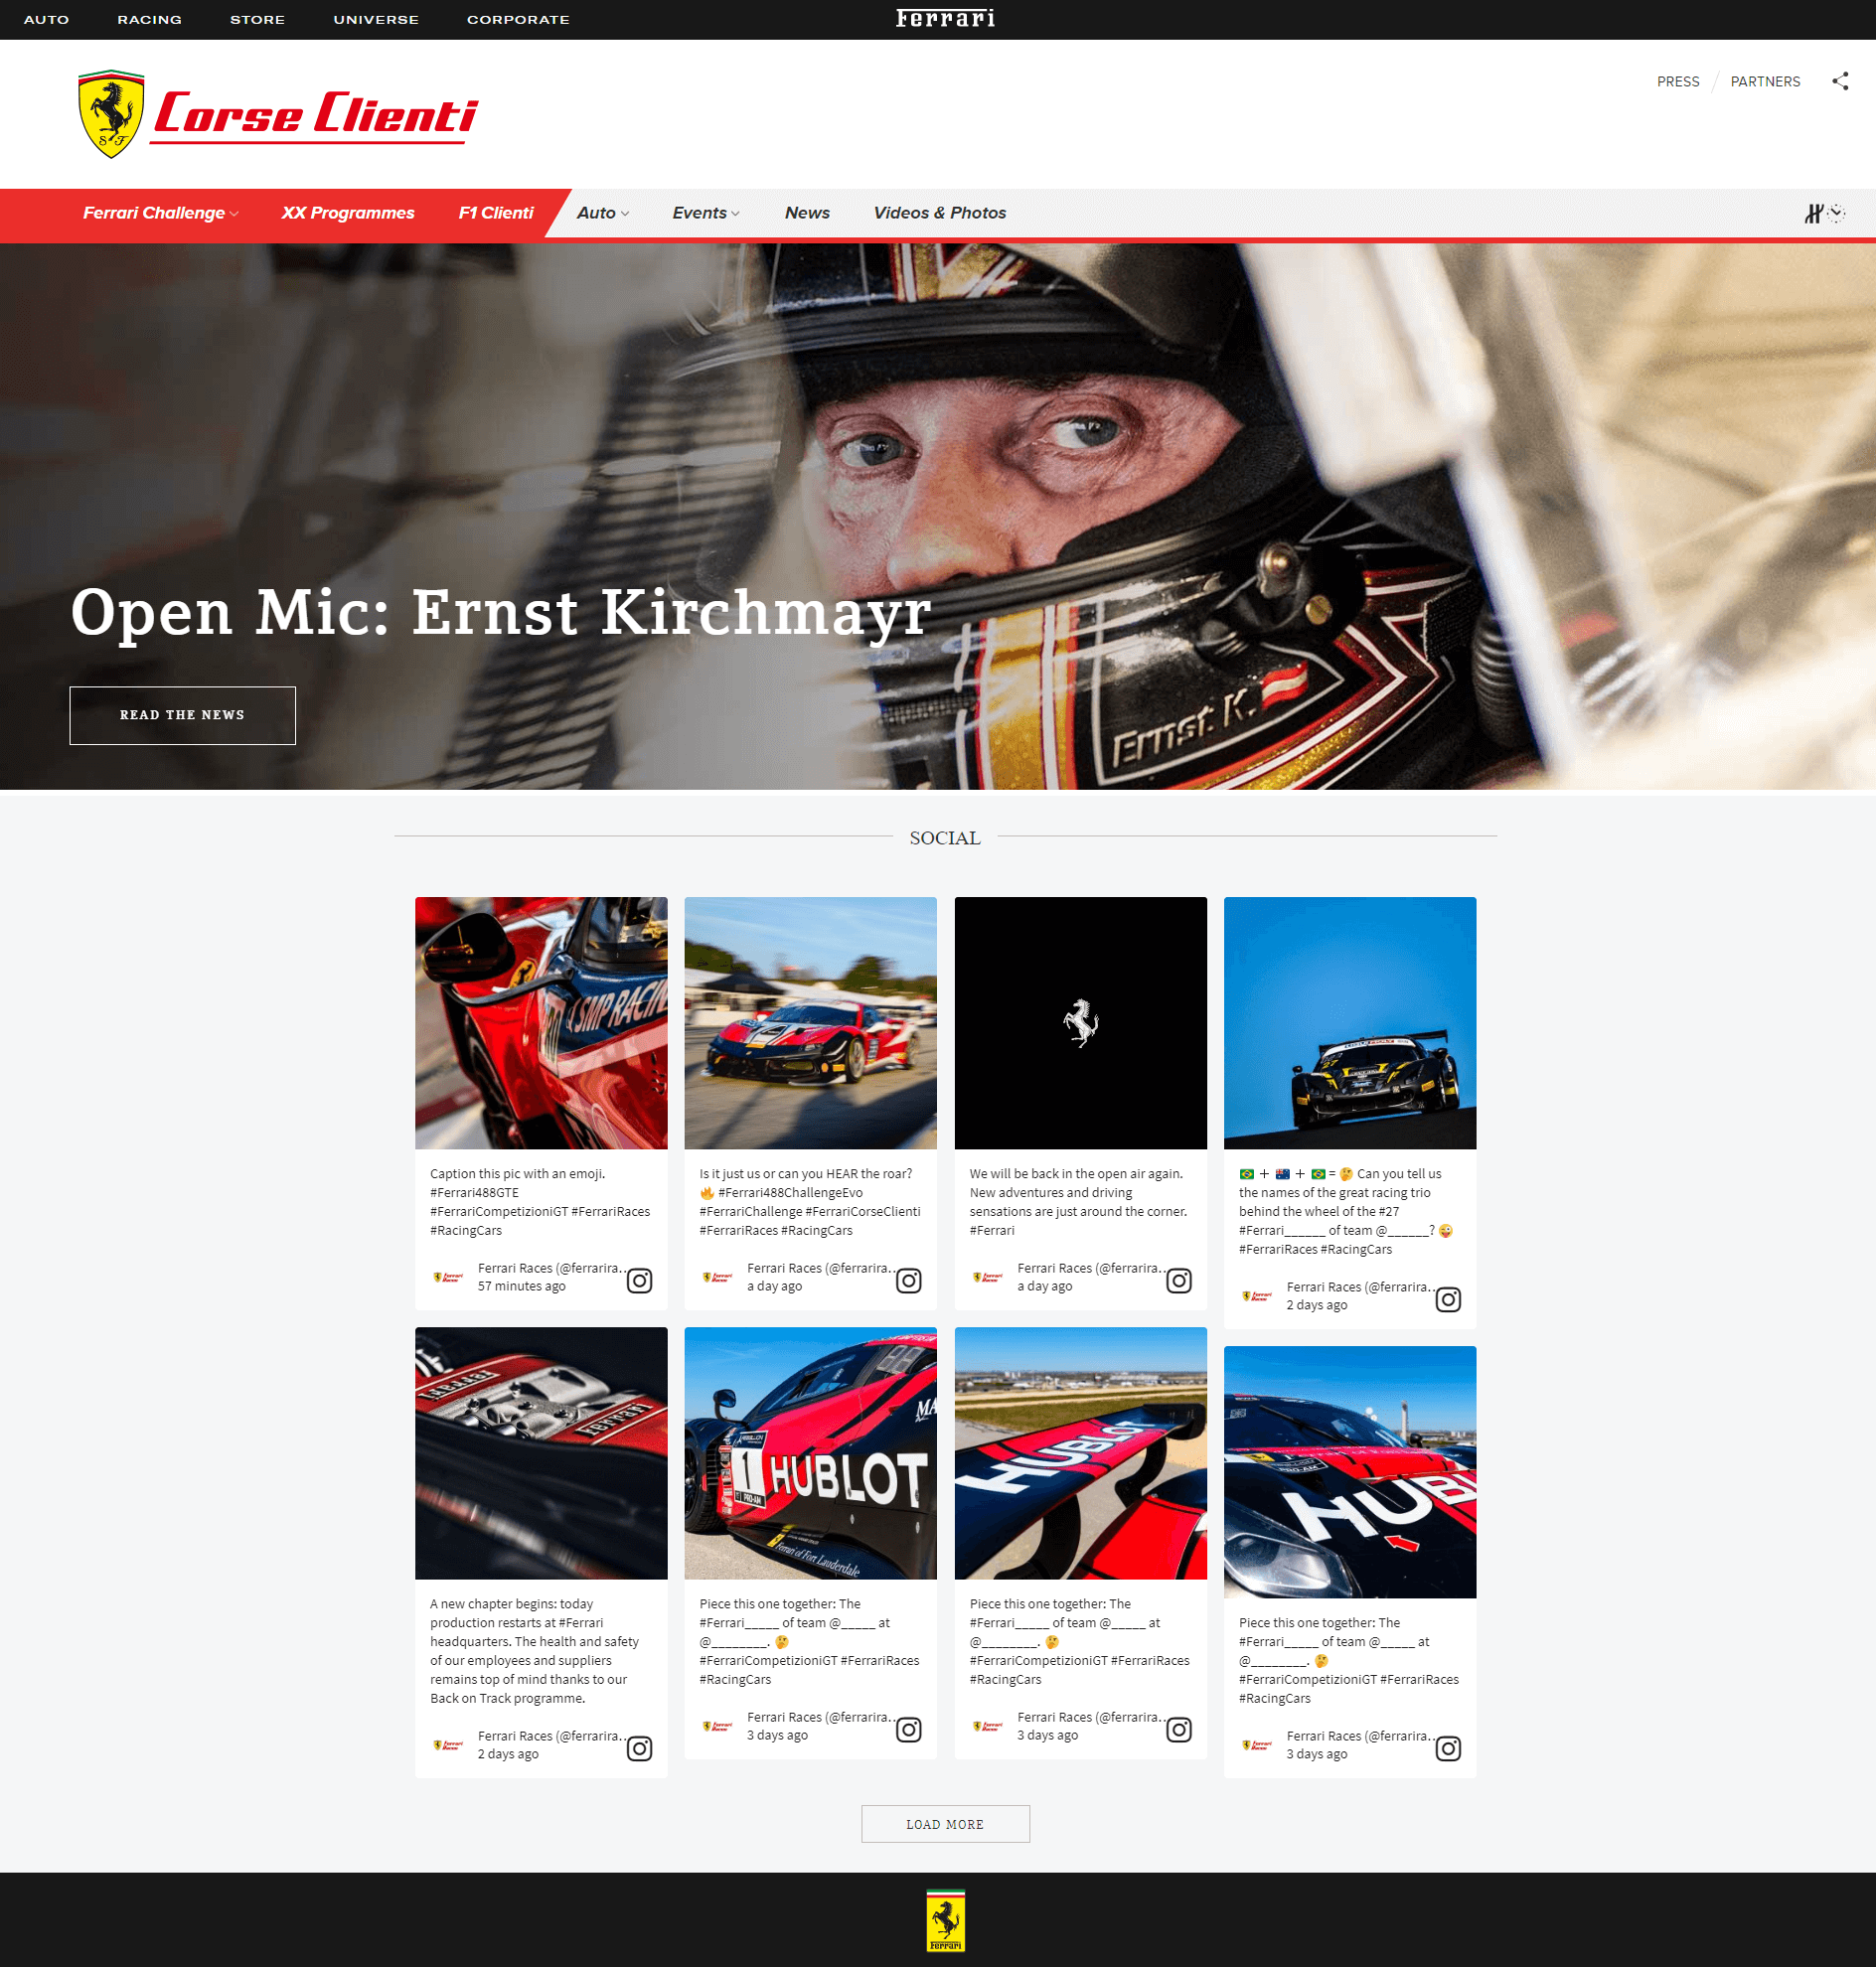 Screenshot of the Corse Clienti (Ferrari's customer racing division) page of the Ferrari website with the live social media feed embedded.